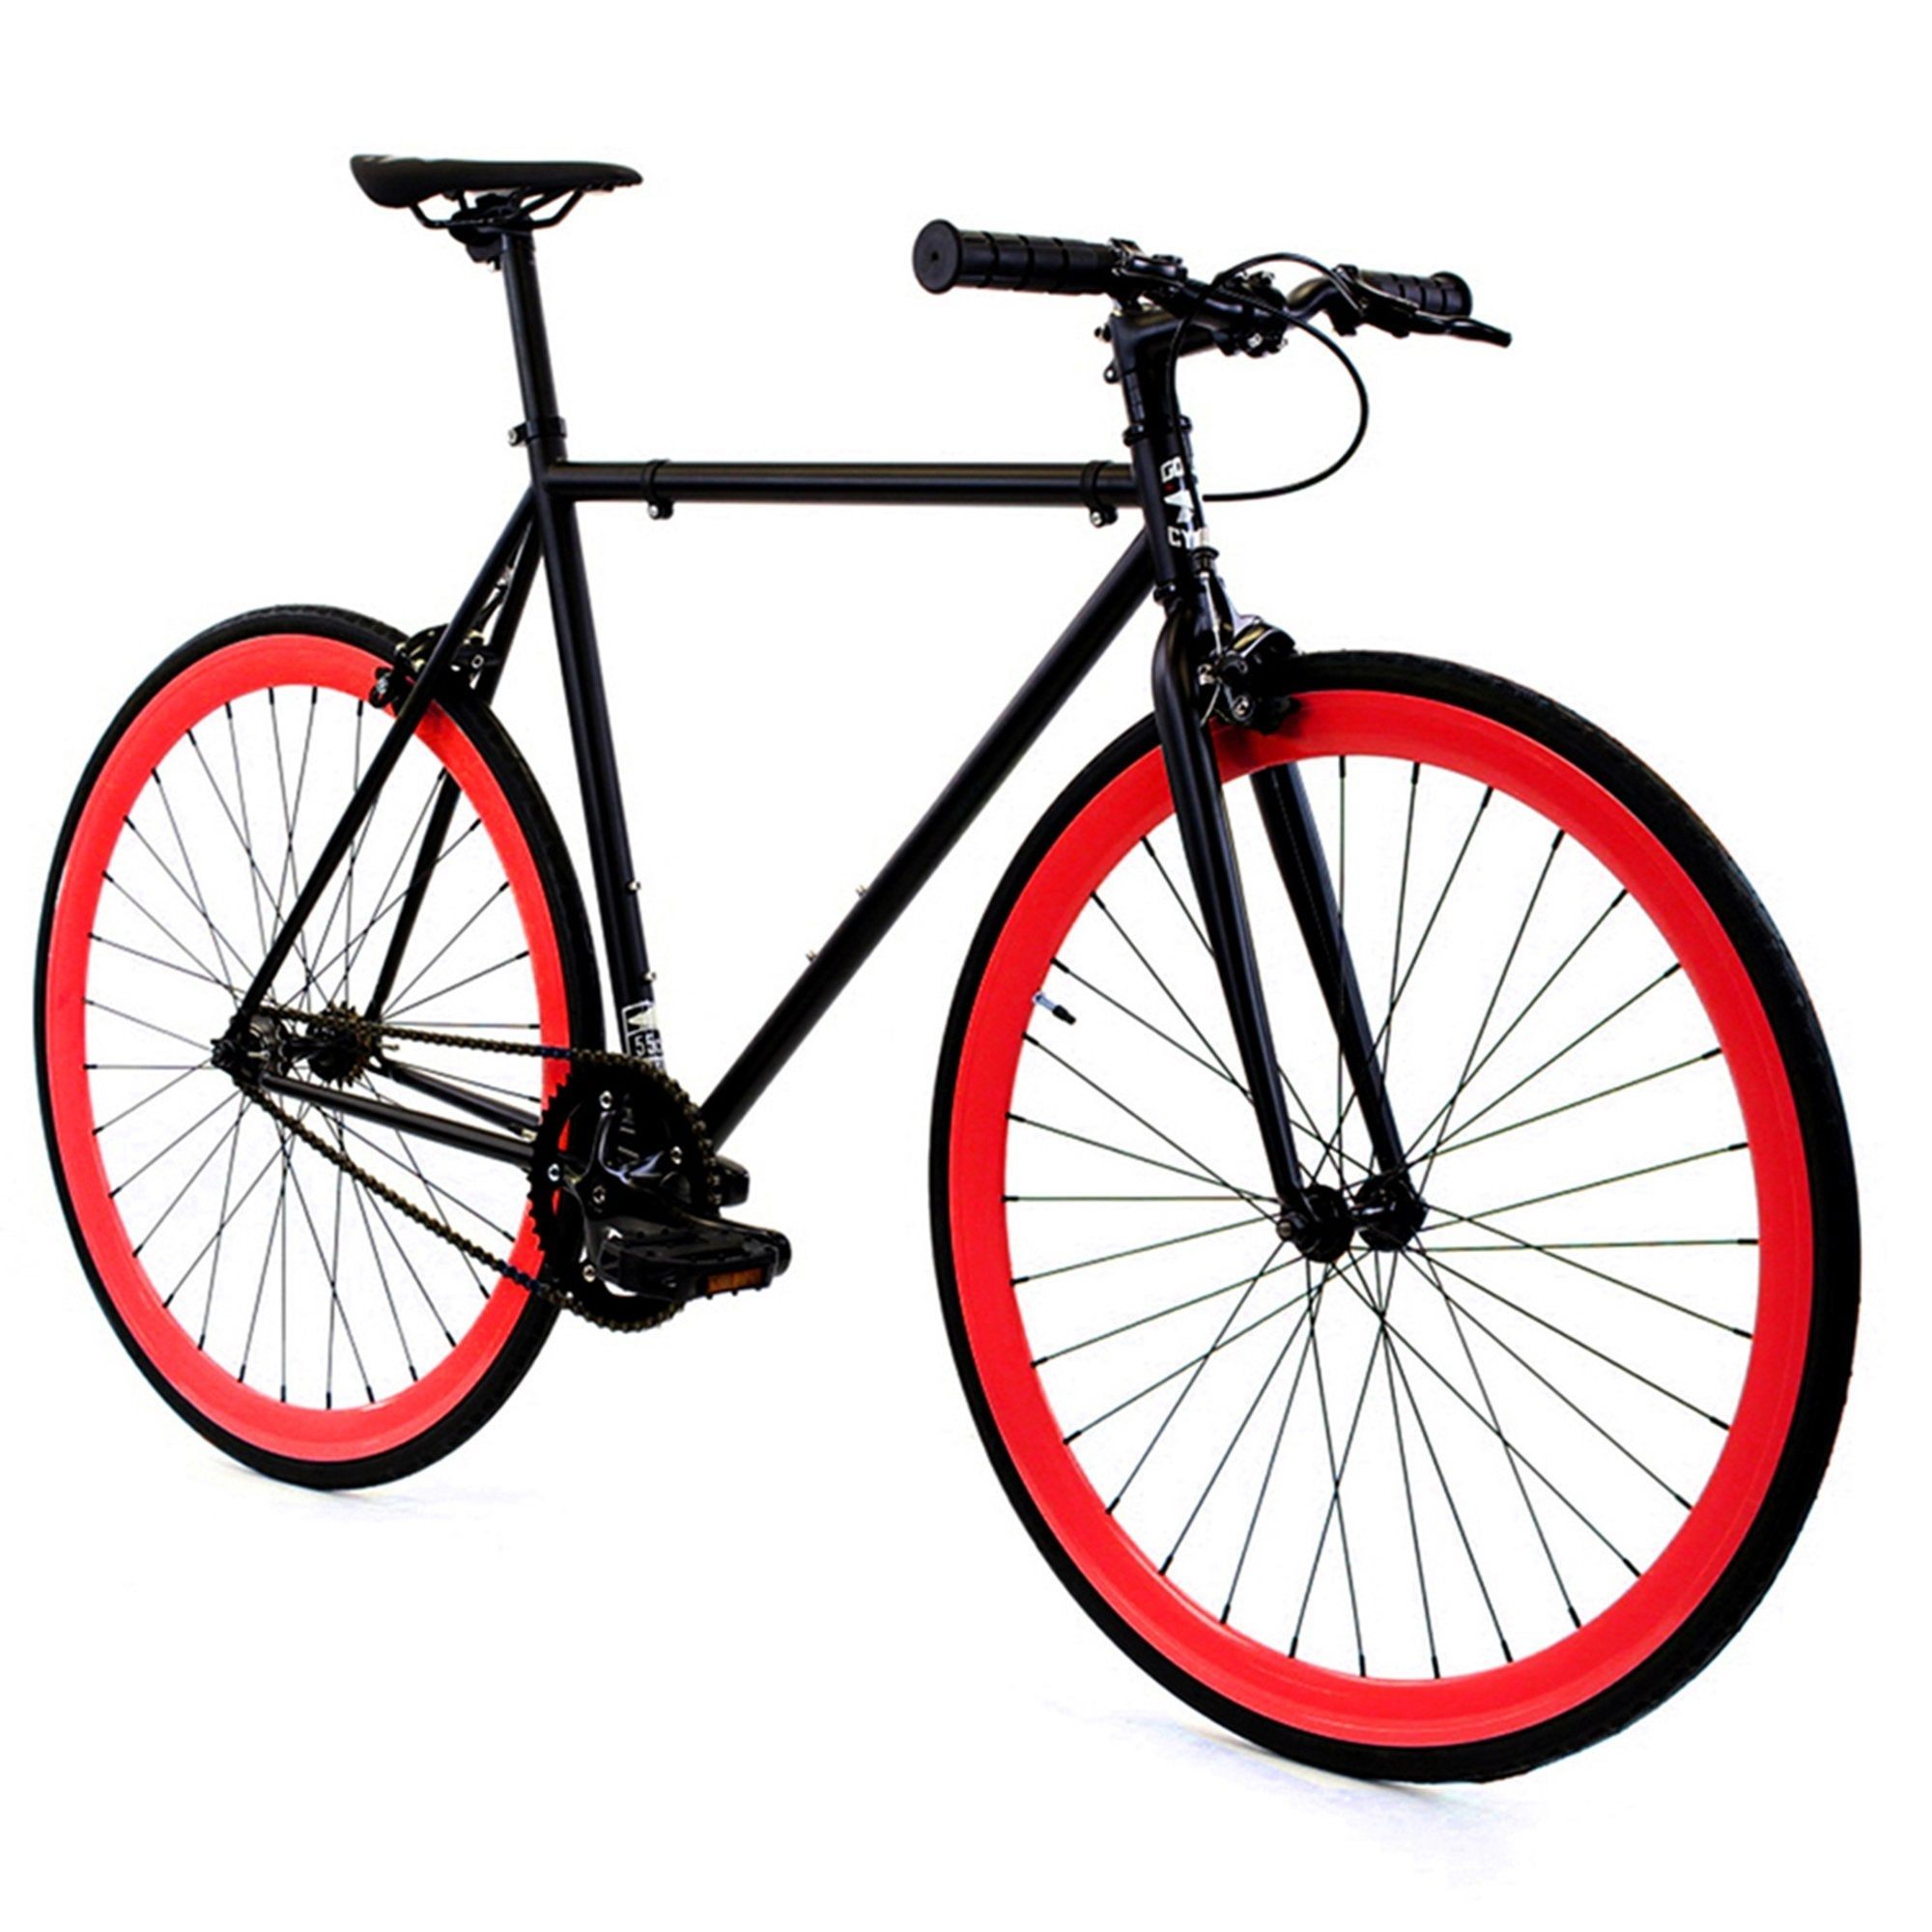 Shop Fixed Gear - GOLDEN CYCLES Fixed Gear Bike Steel Frame Fixie ...